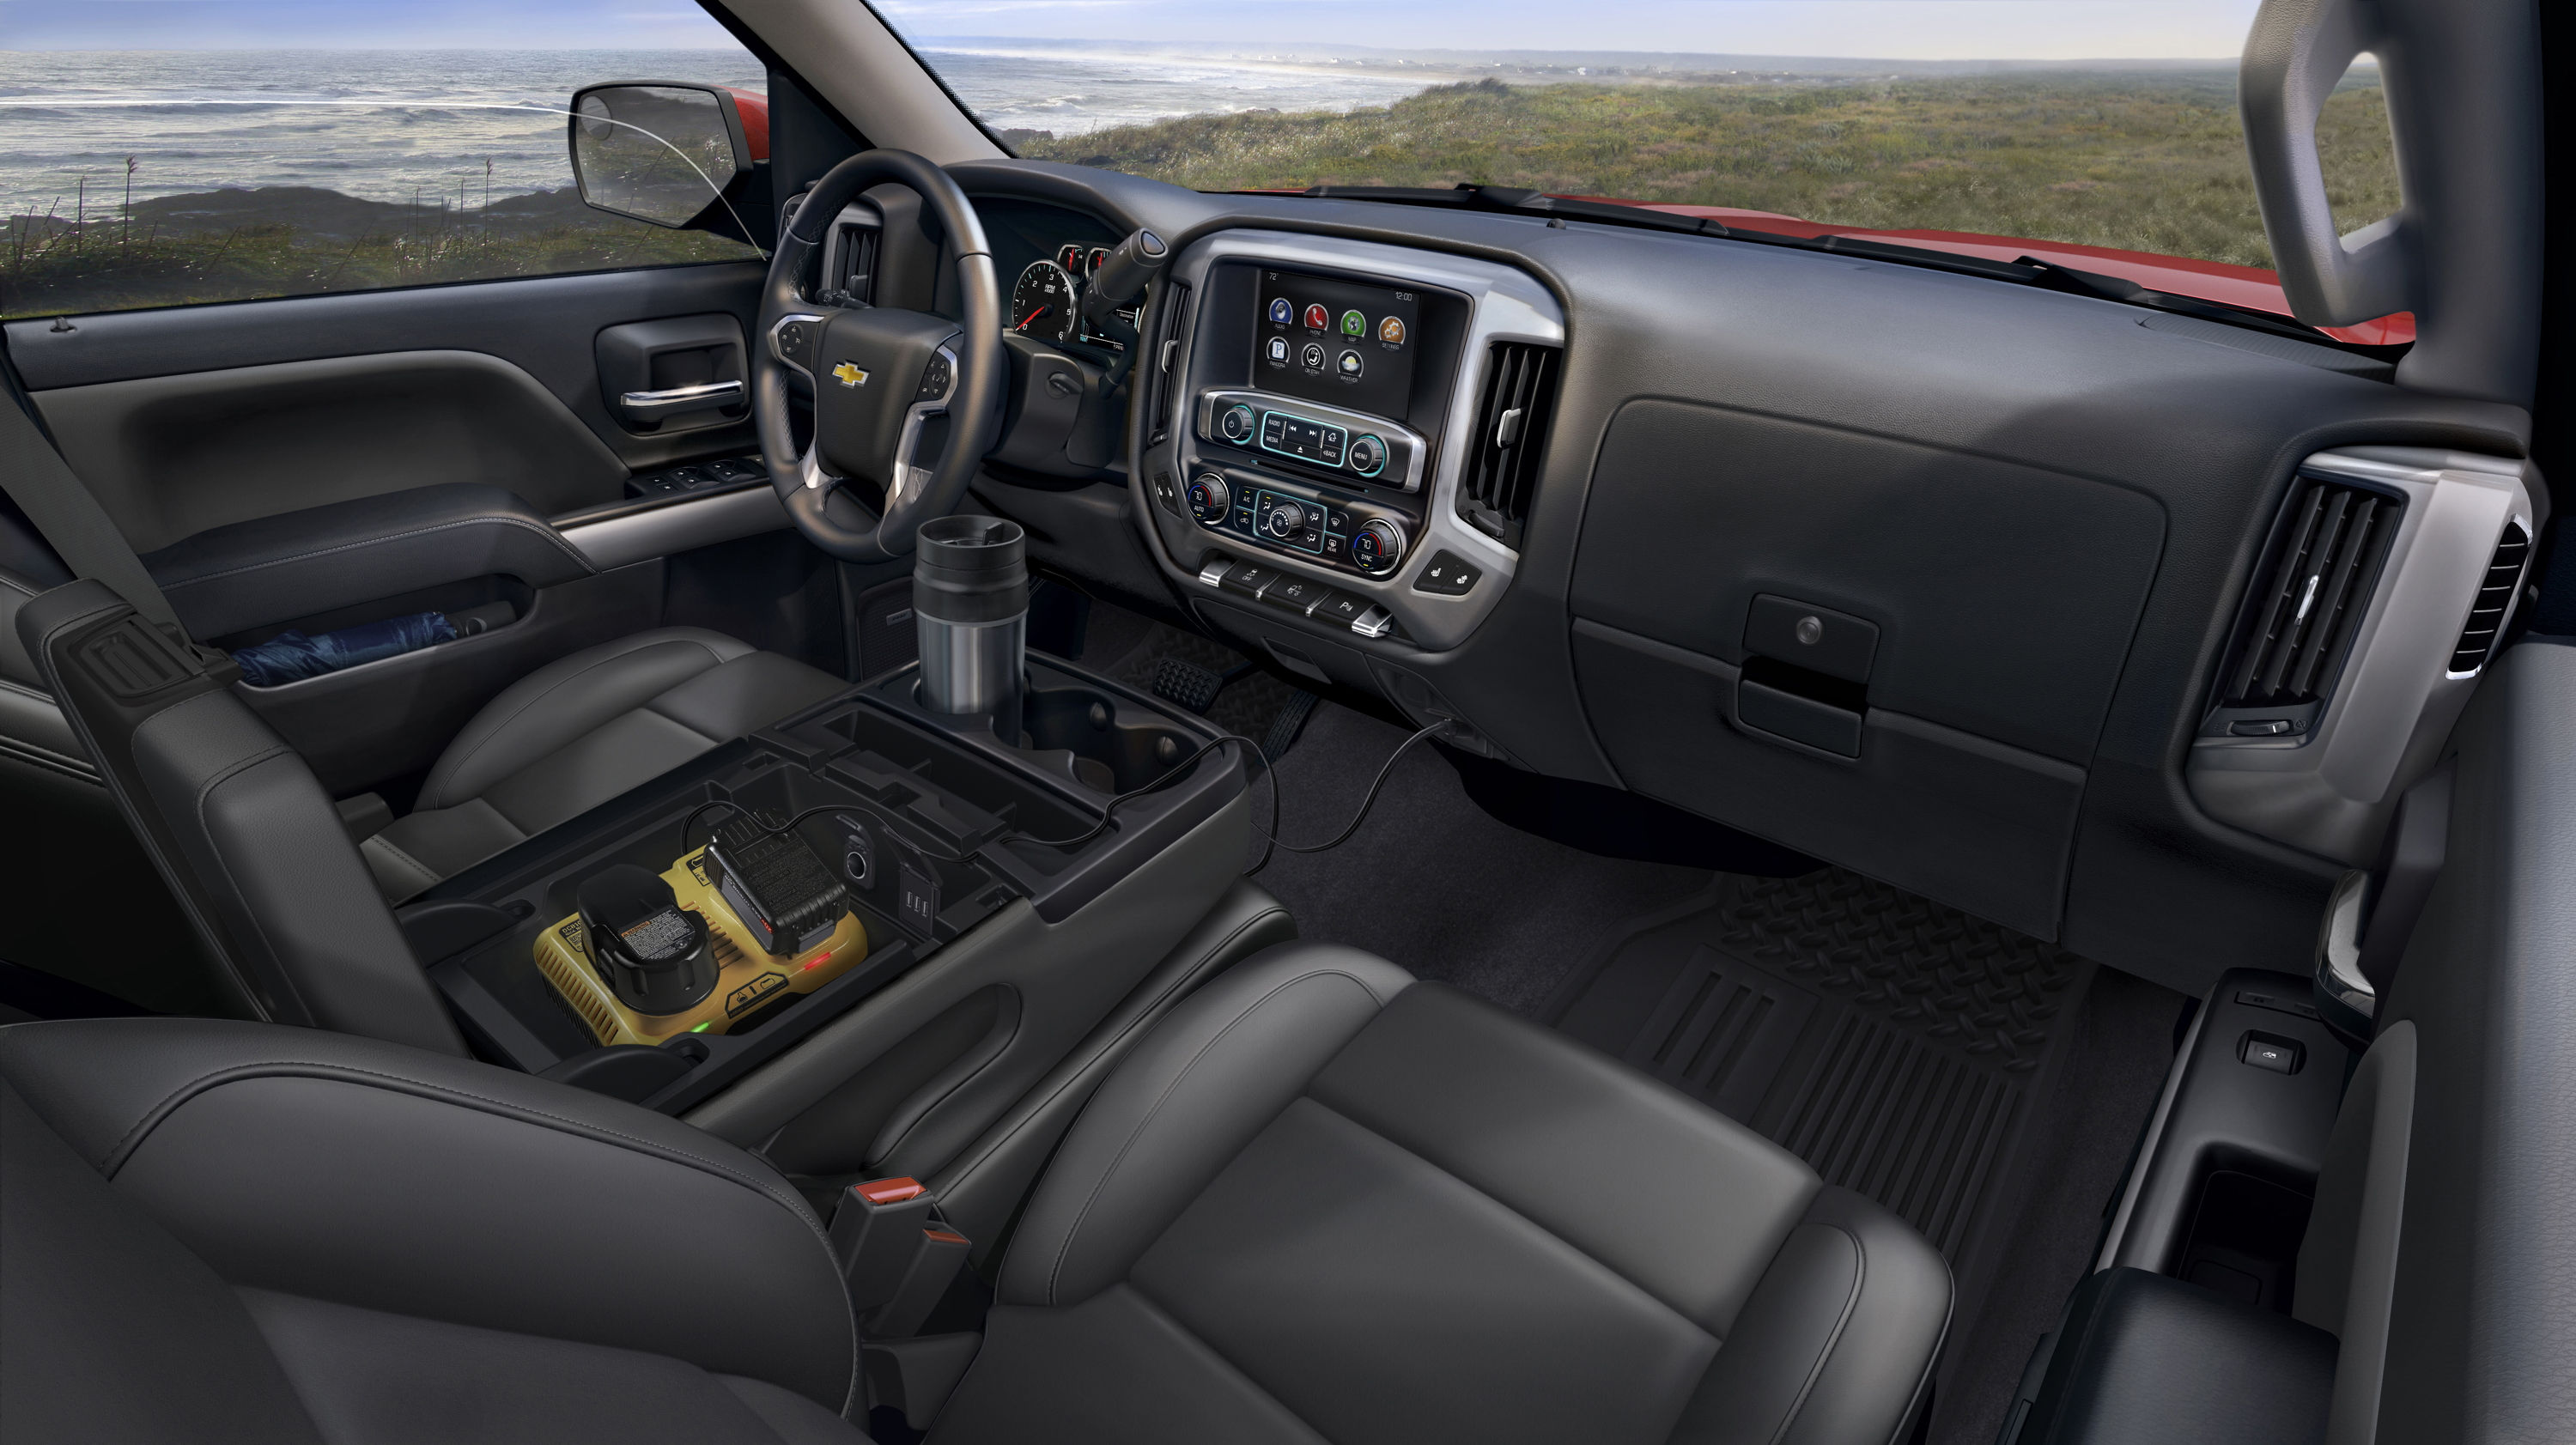 Chevy Silverado Interior Autos Post